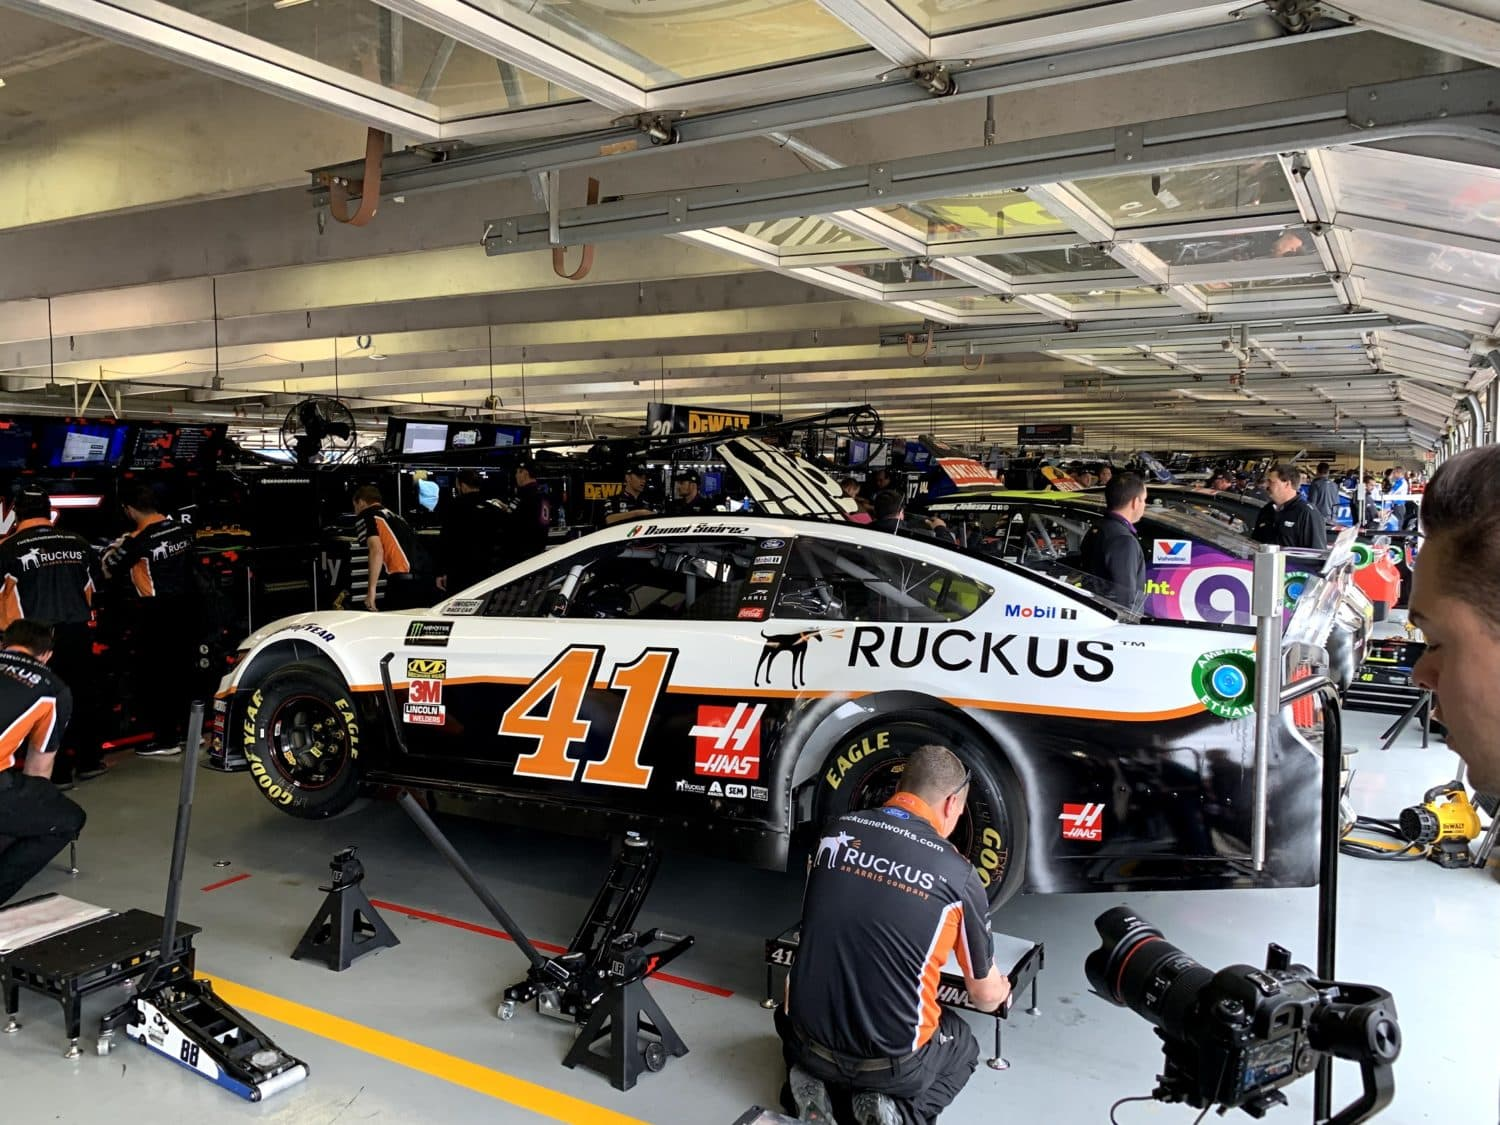 NASCAR and its teams are eager and excited to return to racing, and have great respect for the responsibility that comes with a return to competition